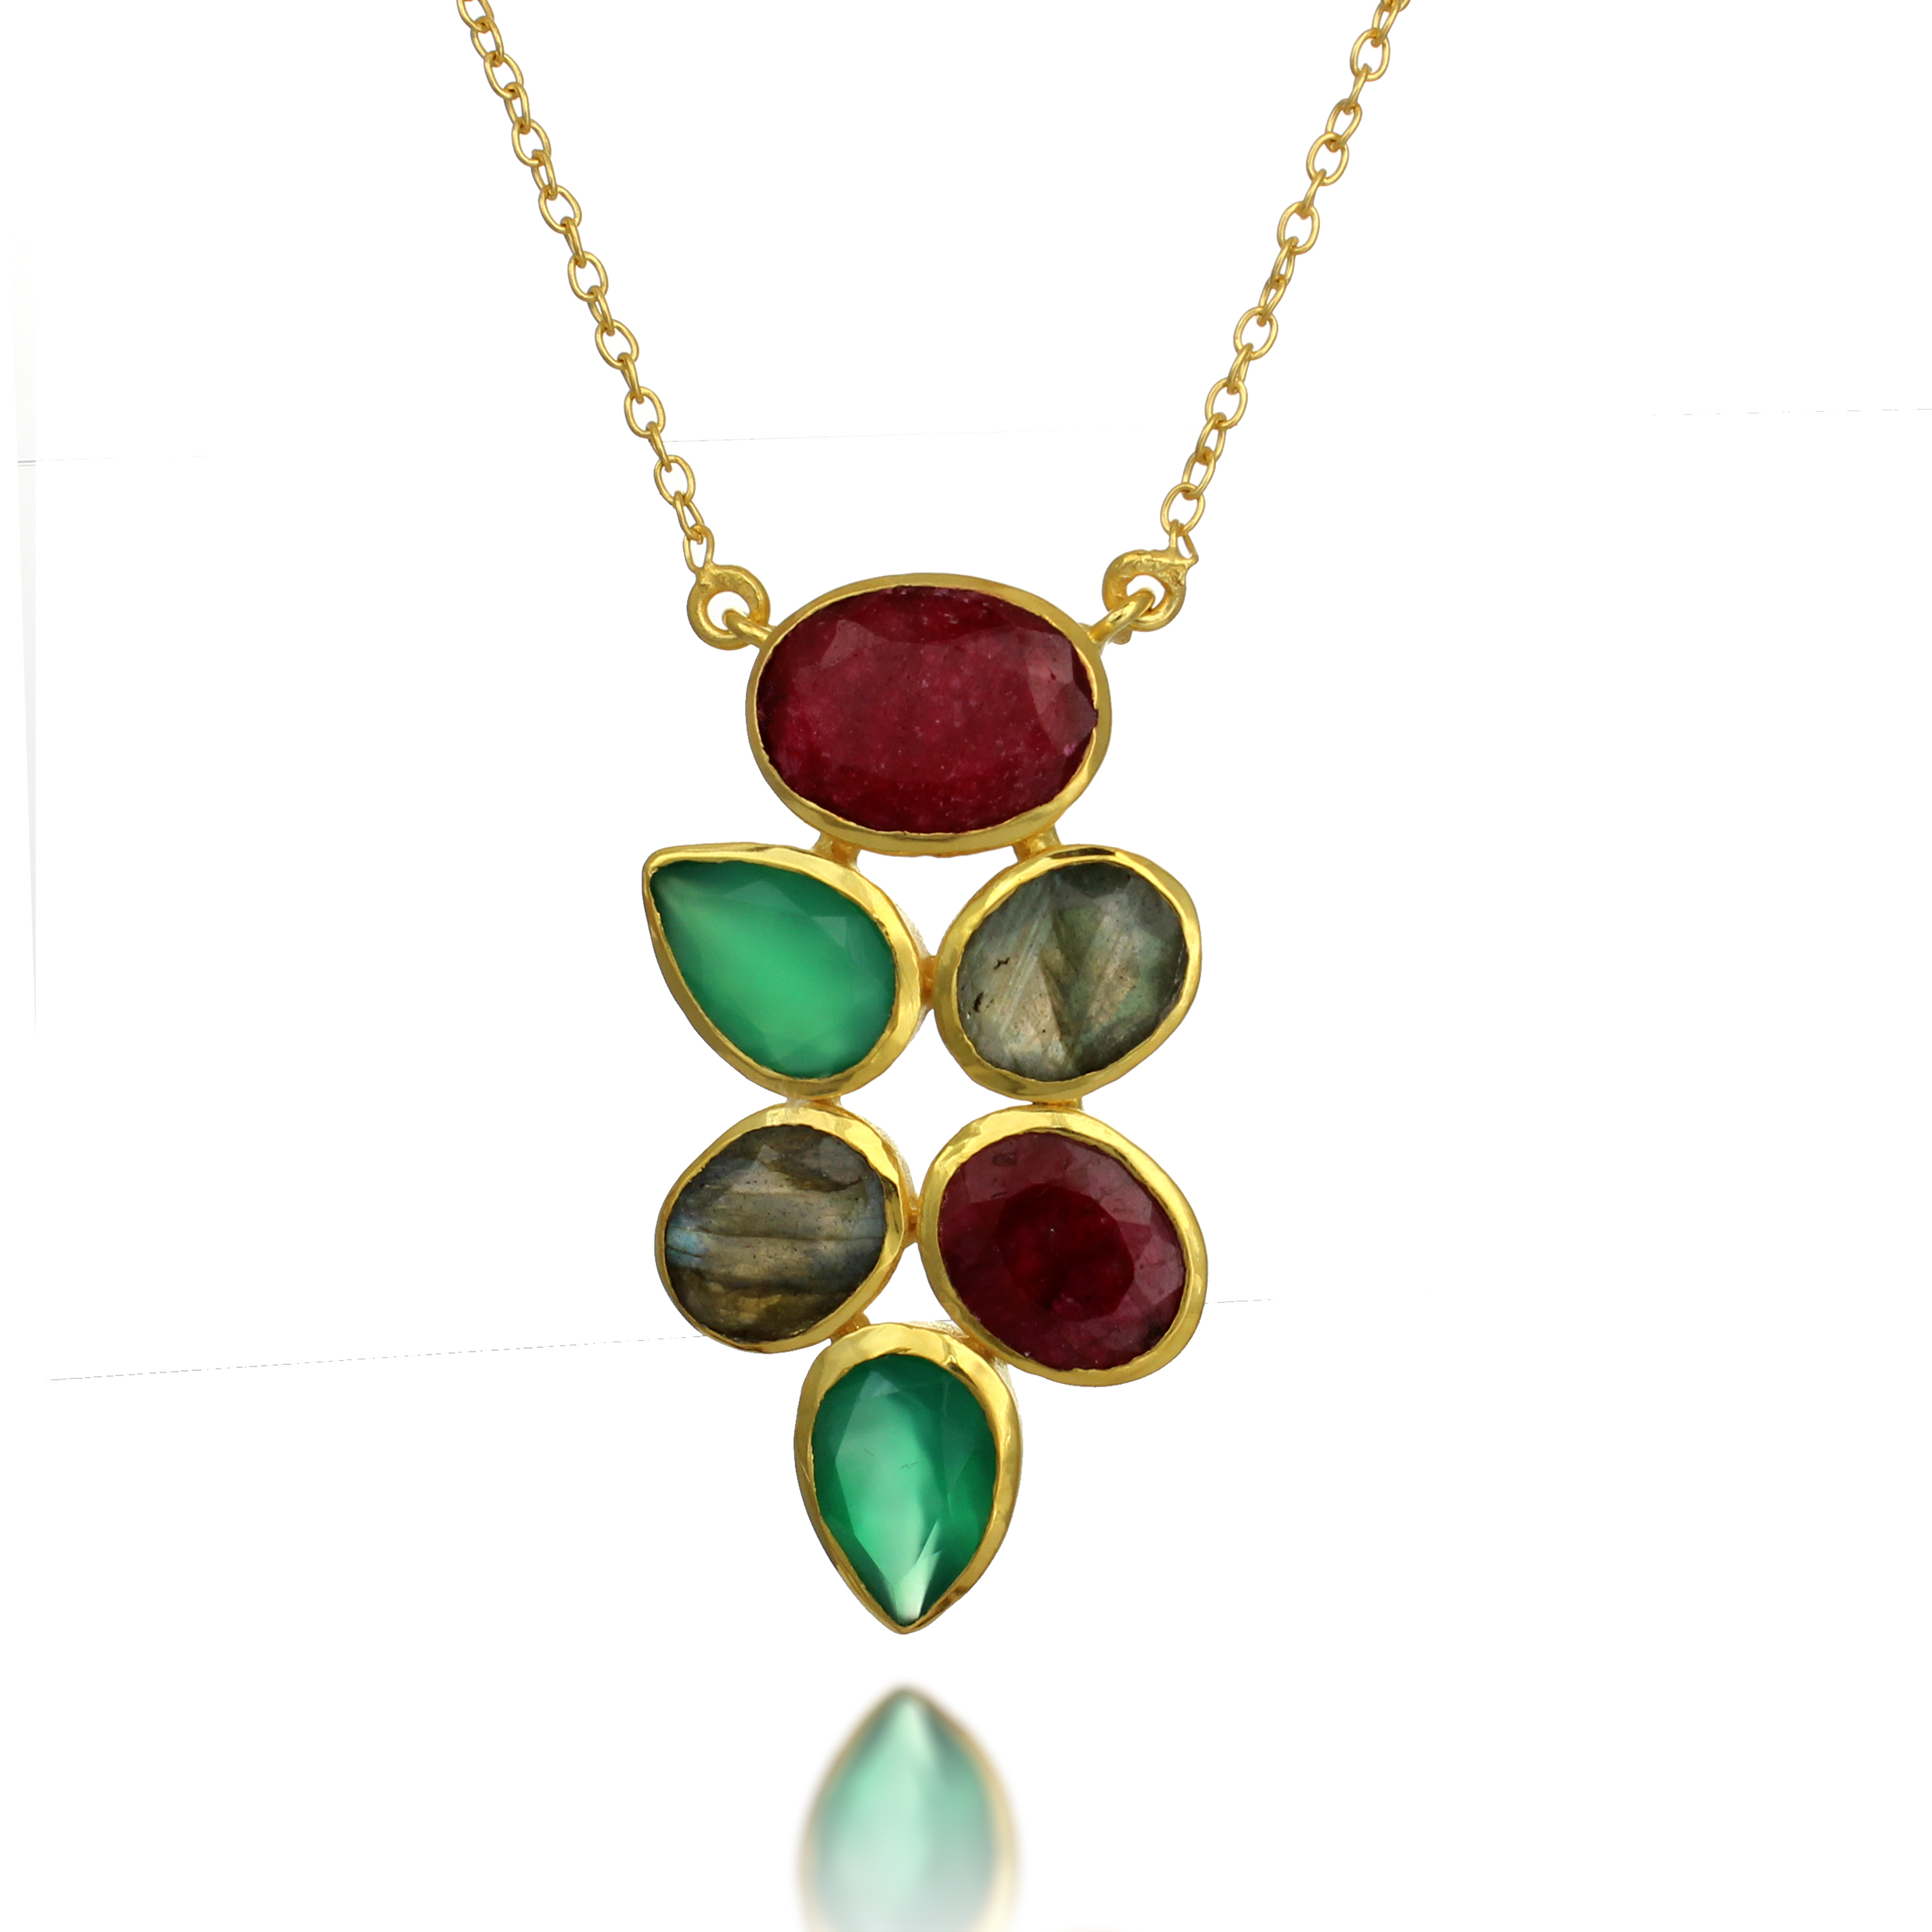 18K Gold-Plated Red Ruby, Green Onyx, and Labradorite Gemstone Pendant Necklace, 18-19 inches